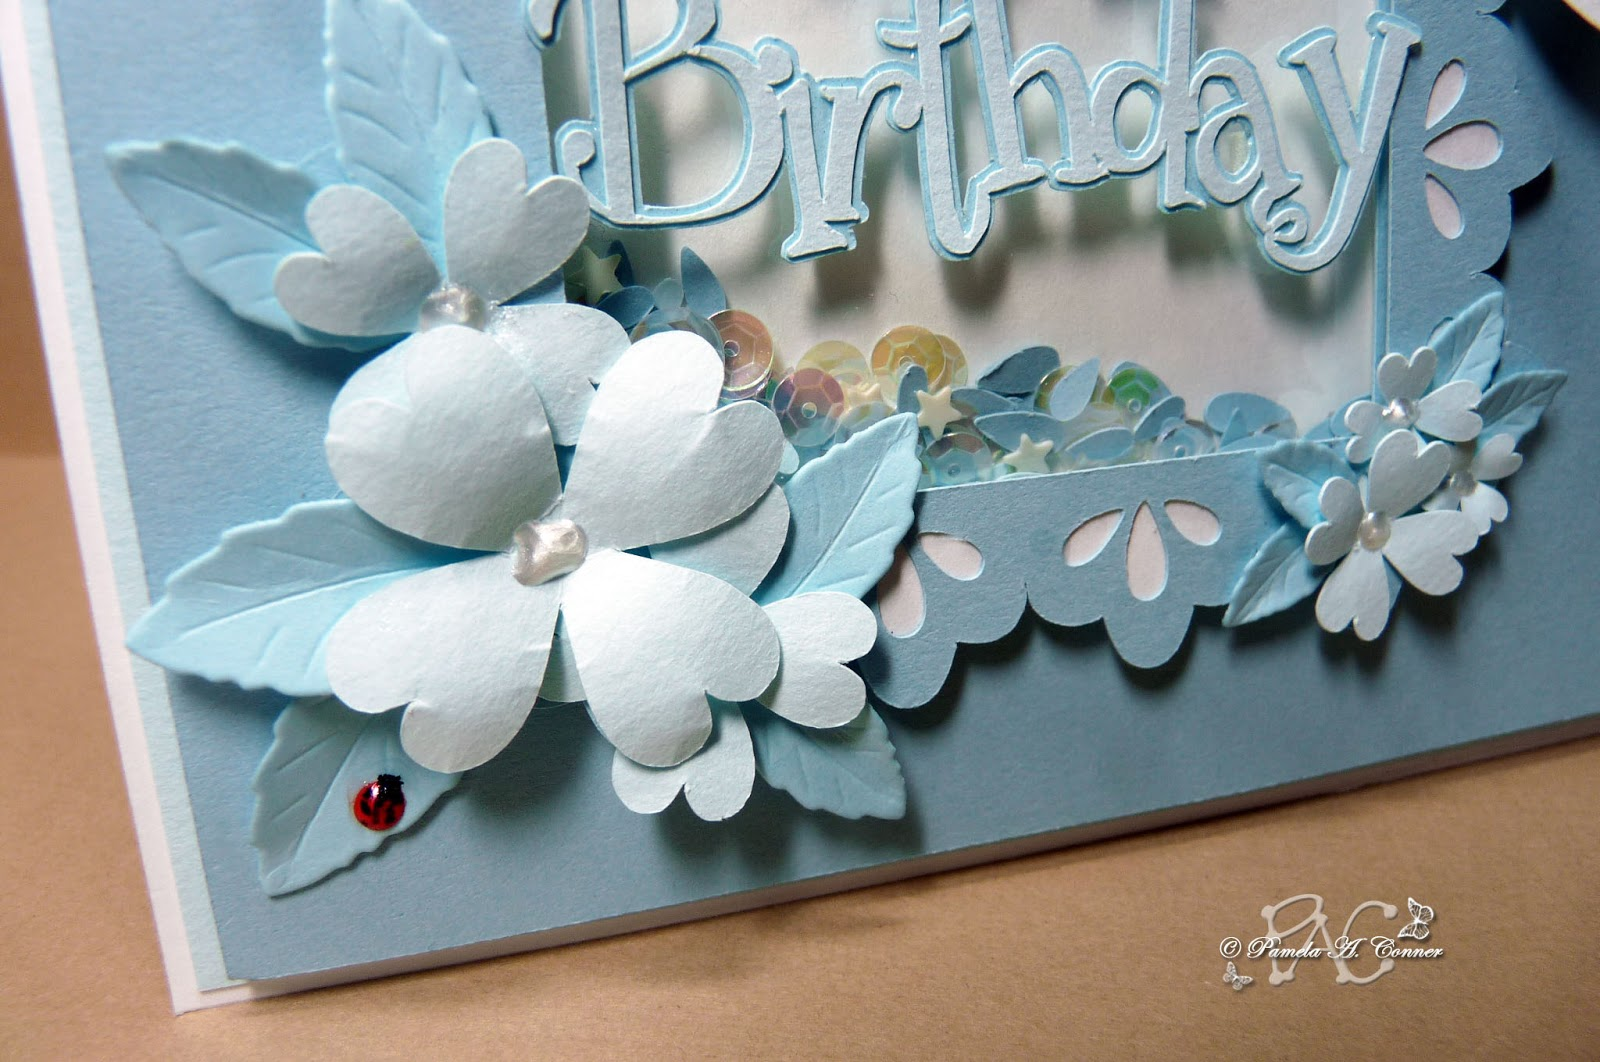 Yorkiemoms creative corner birthday card for 12 year old girl for the inside of the card i designed a border to match the frame and printed it on white cardstock and designed the text portion using the girls are bookmarktalkfo Images